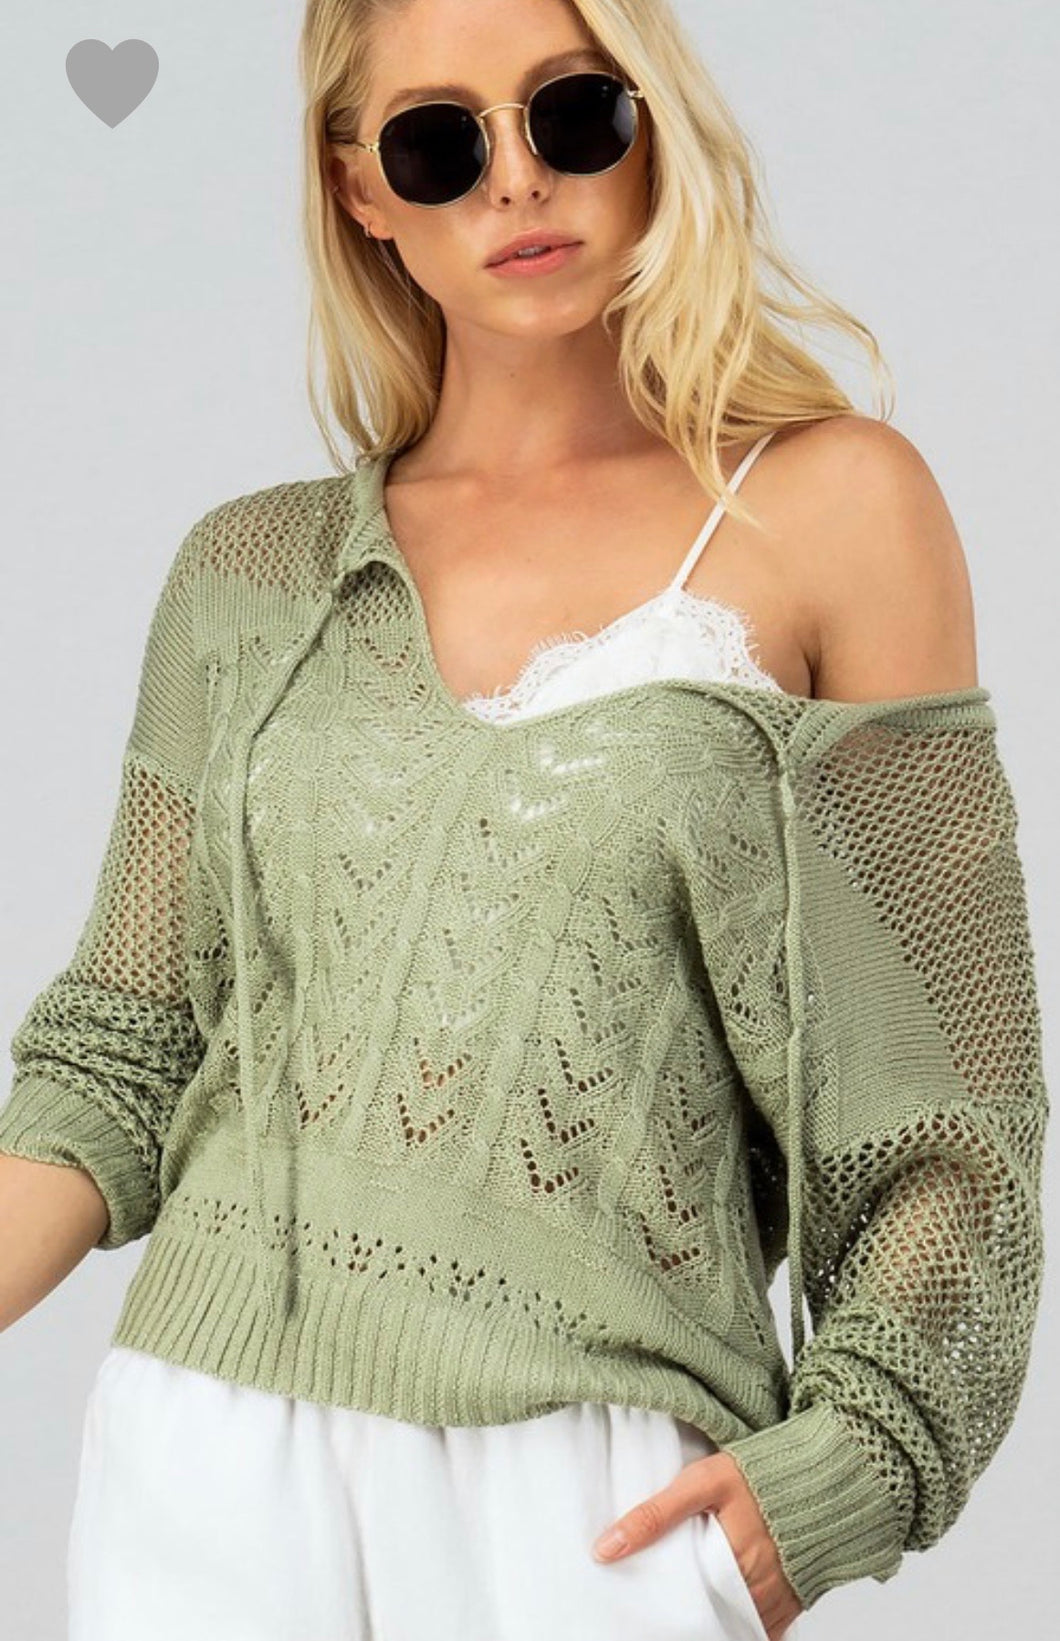 1450 - Crochet Knit Hooded Top